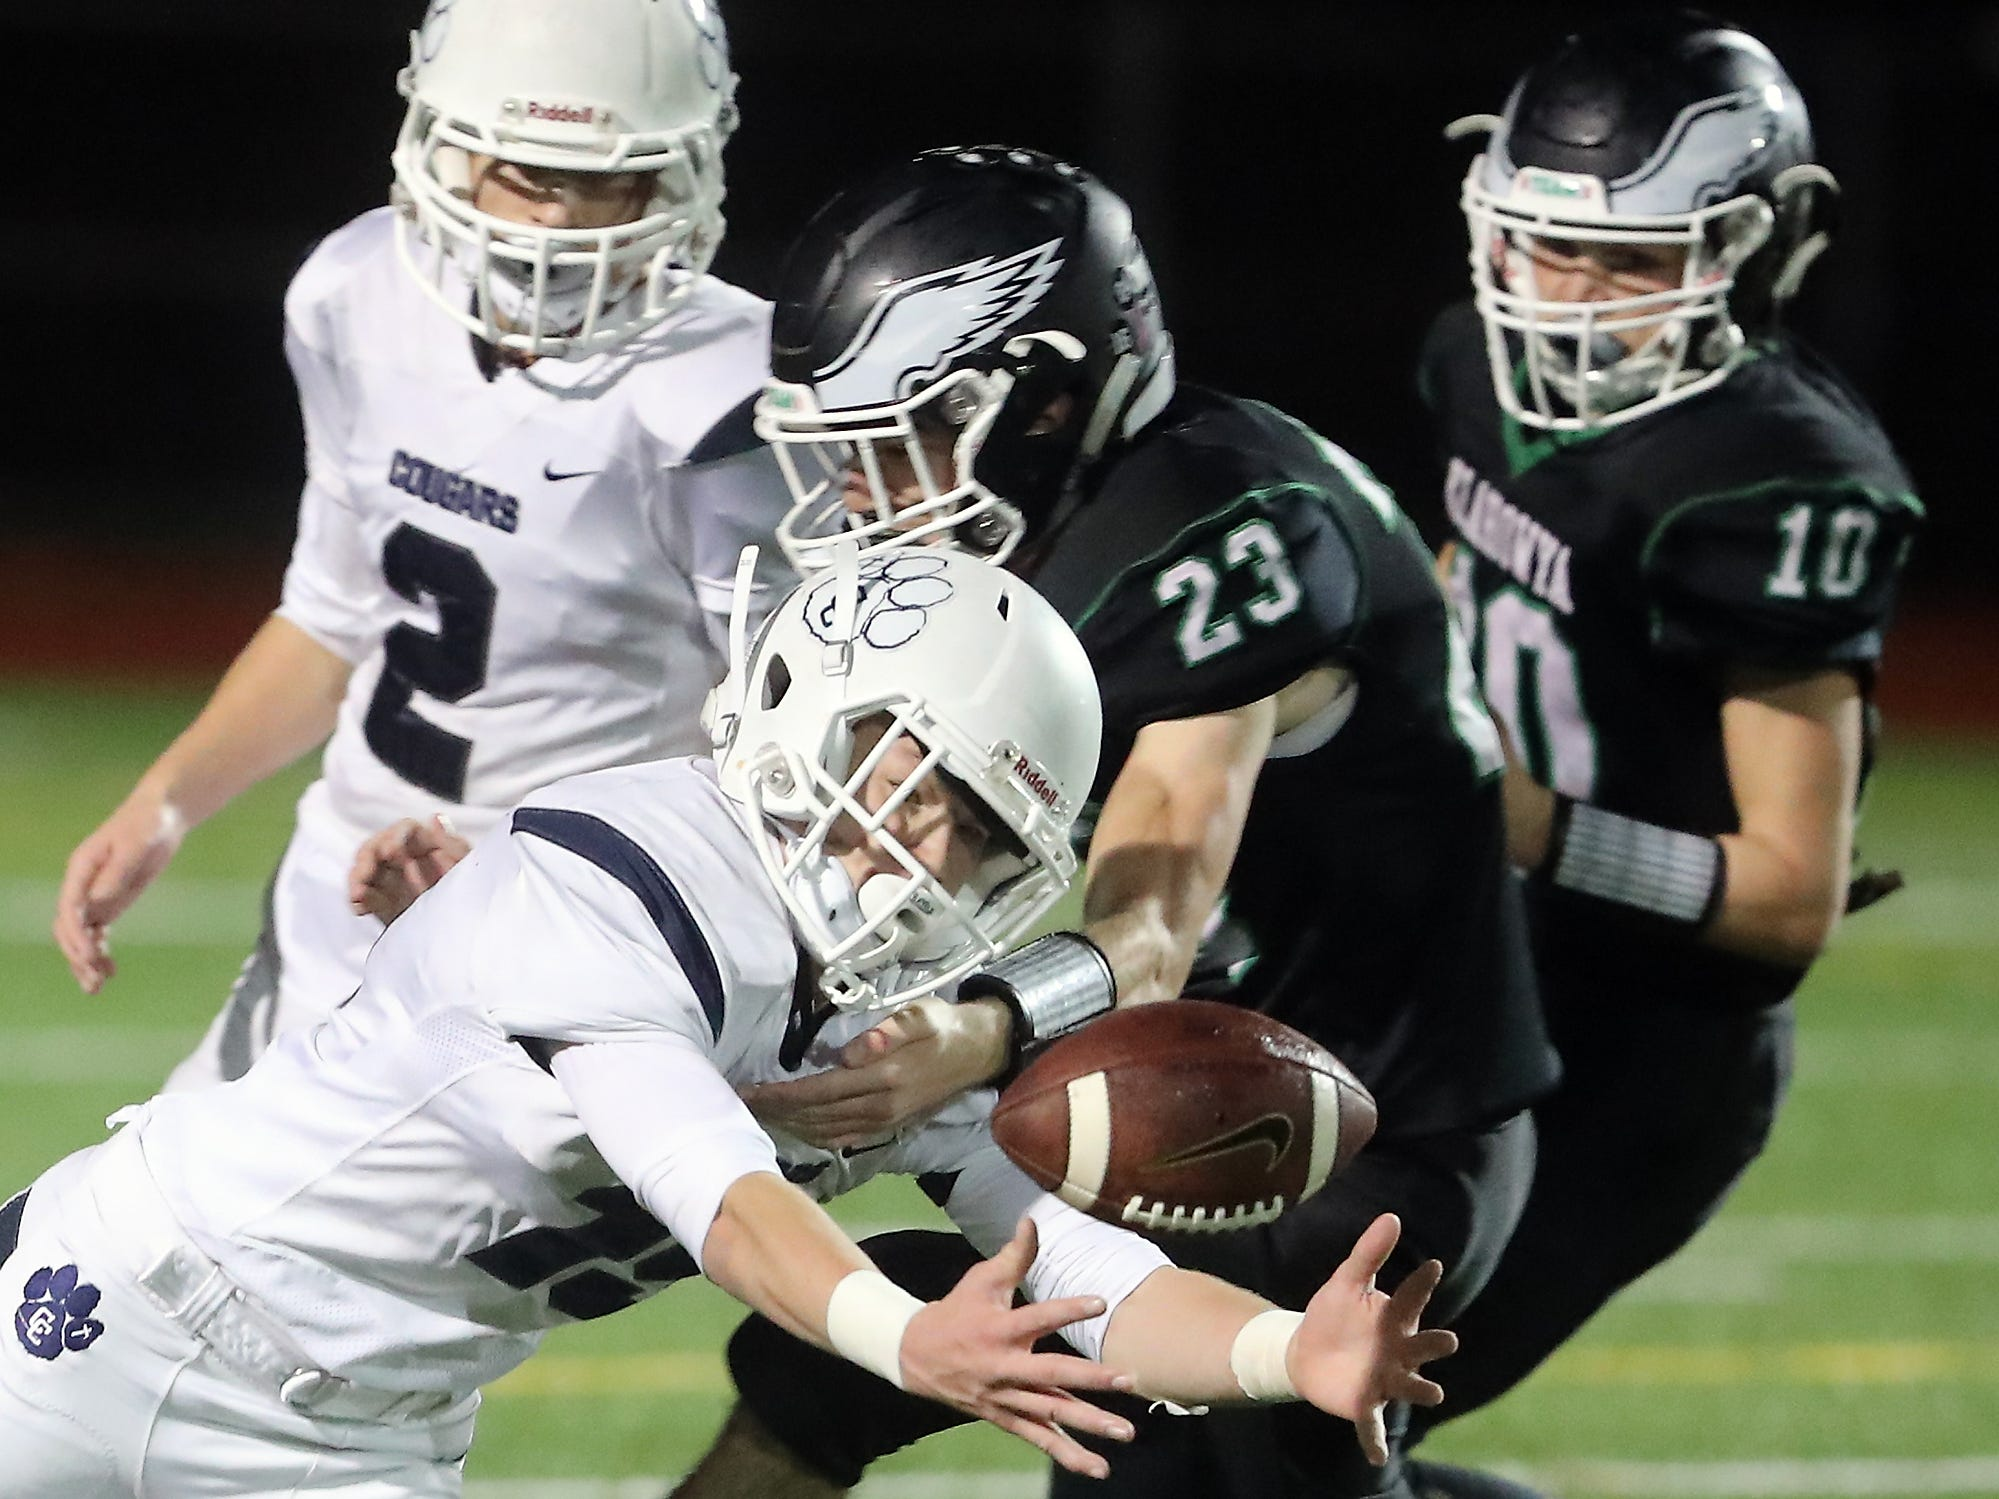 Cascade Christian's Connor Zetterberg (15) makes a grab for a loose ball while under the pressure of Klahowya's Nicholas Lewis (23) at Silverdale Stadium on Thursday, October 25, 2018.